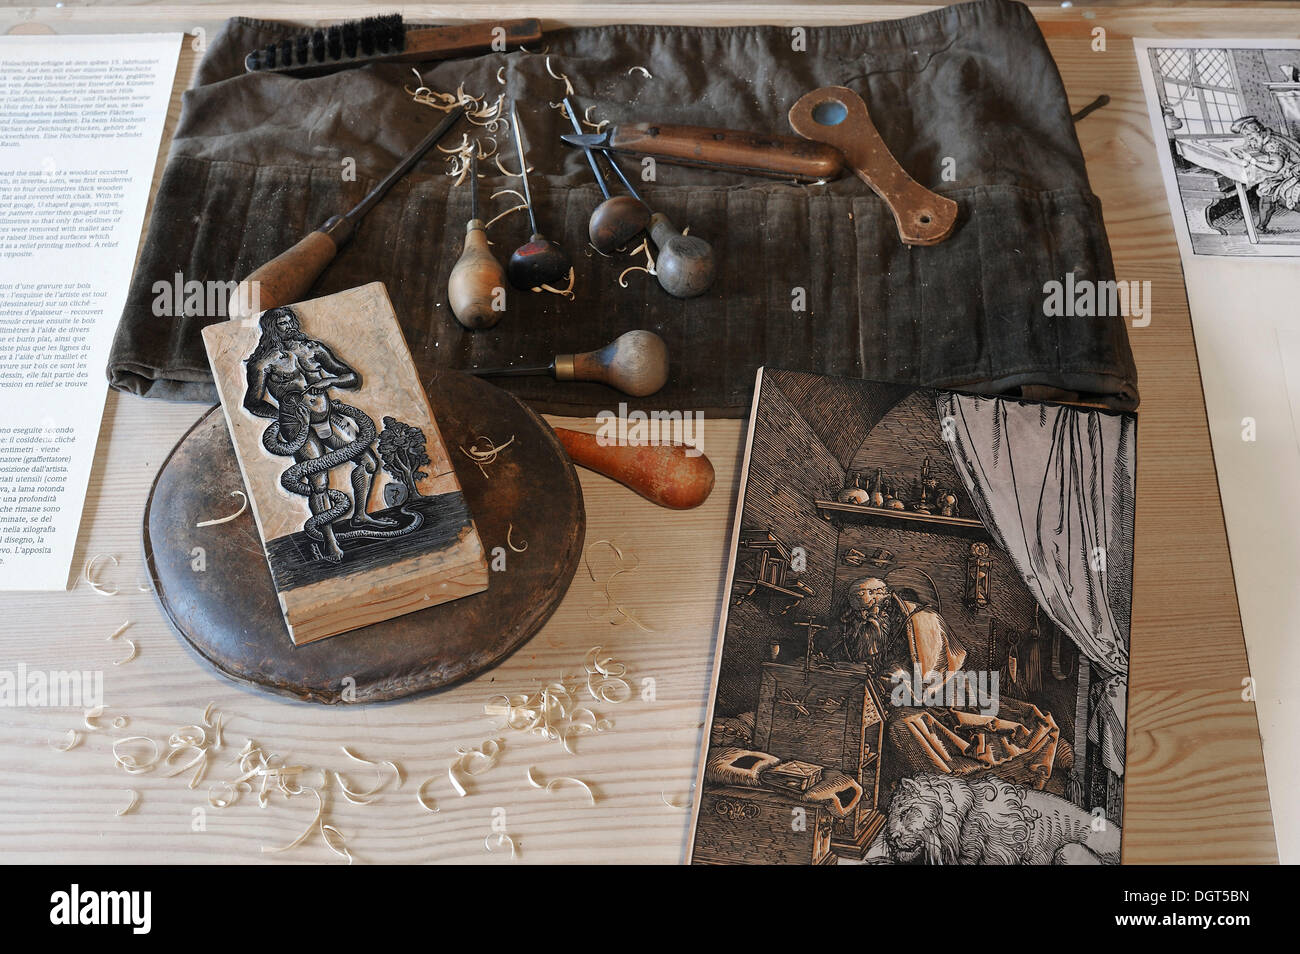 Tools for the production of woodcuts, Albrecht Duerer House, historic center, Nuremberg, Middle Franconia, Bavaria, Germany - Stock Image